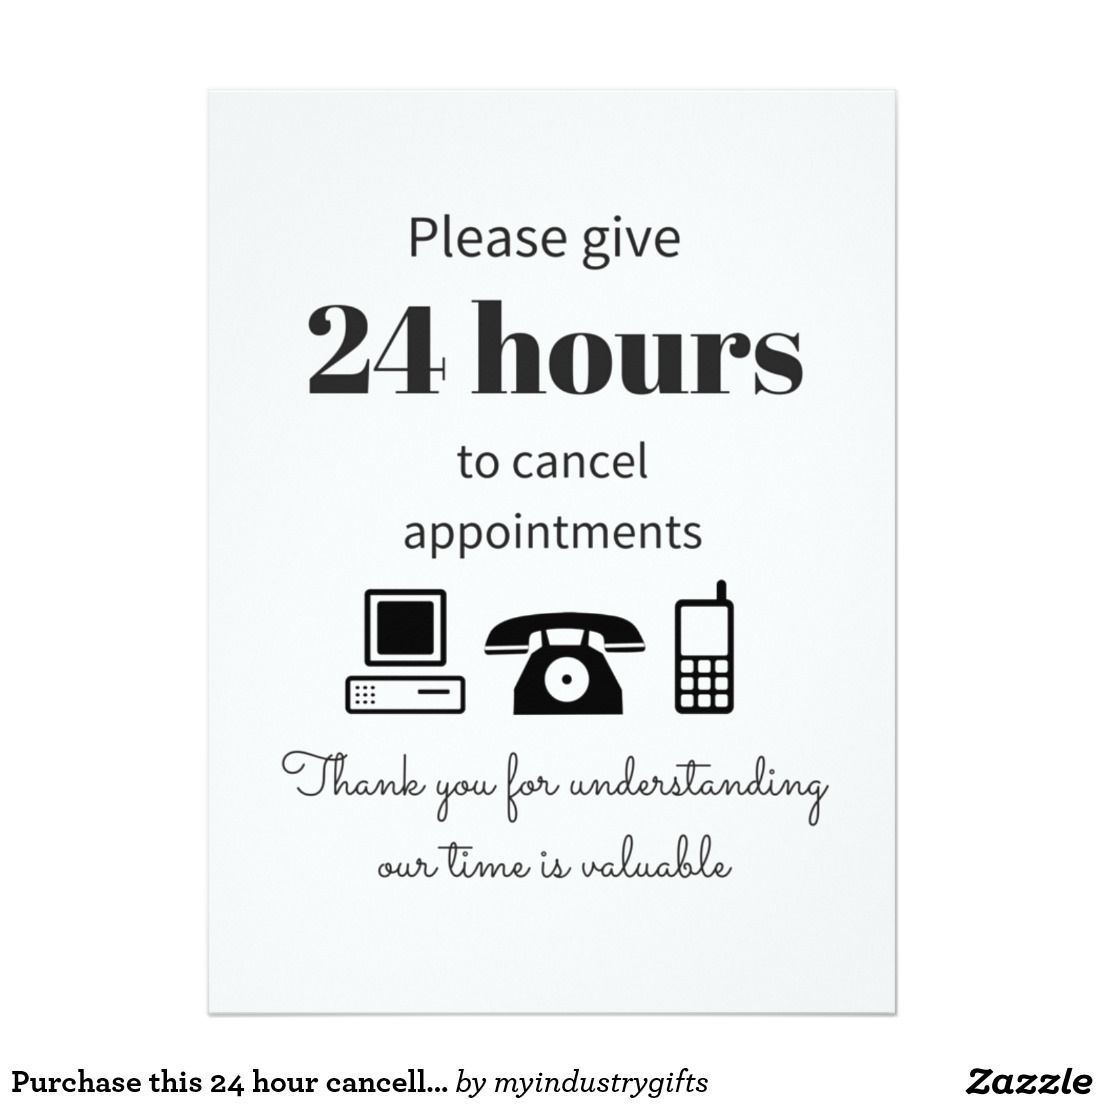 Purchase this 24 hour cancellation policy reduce no show for 24 hour beauty salon nyc